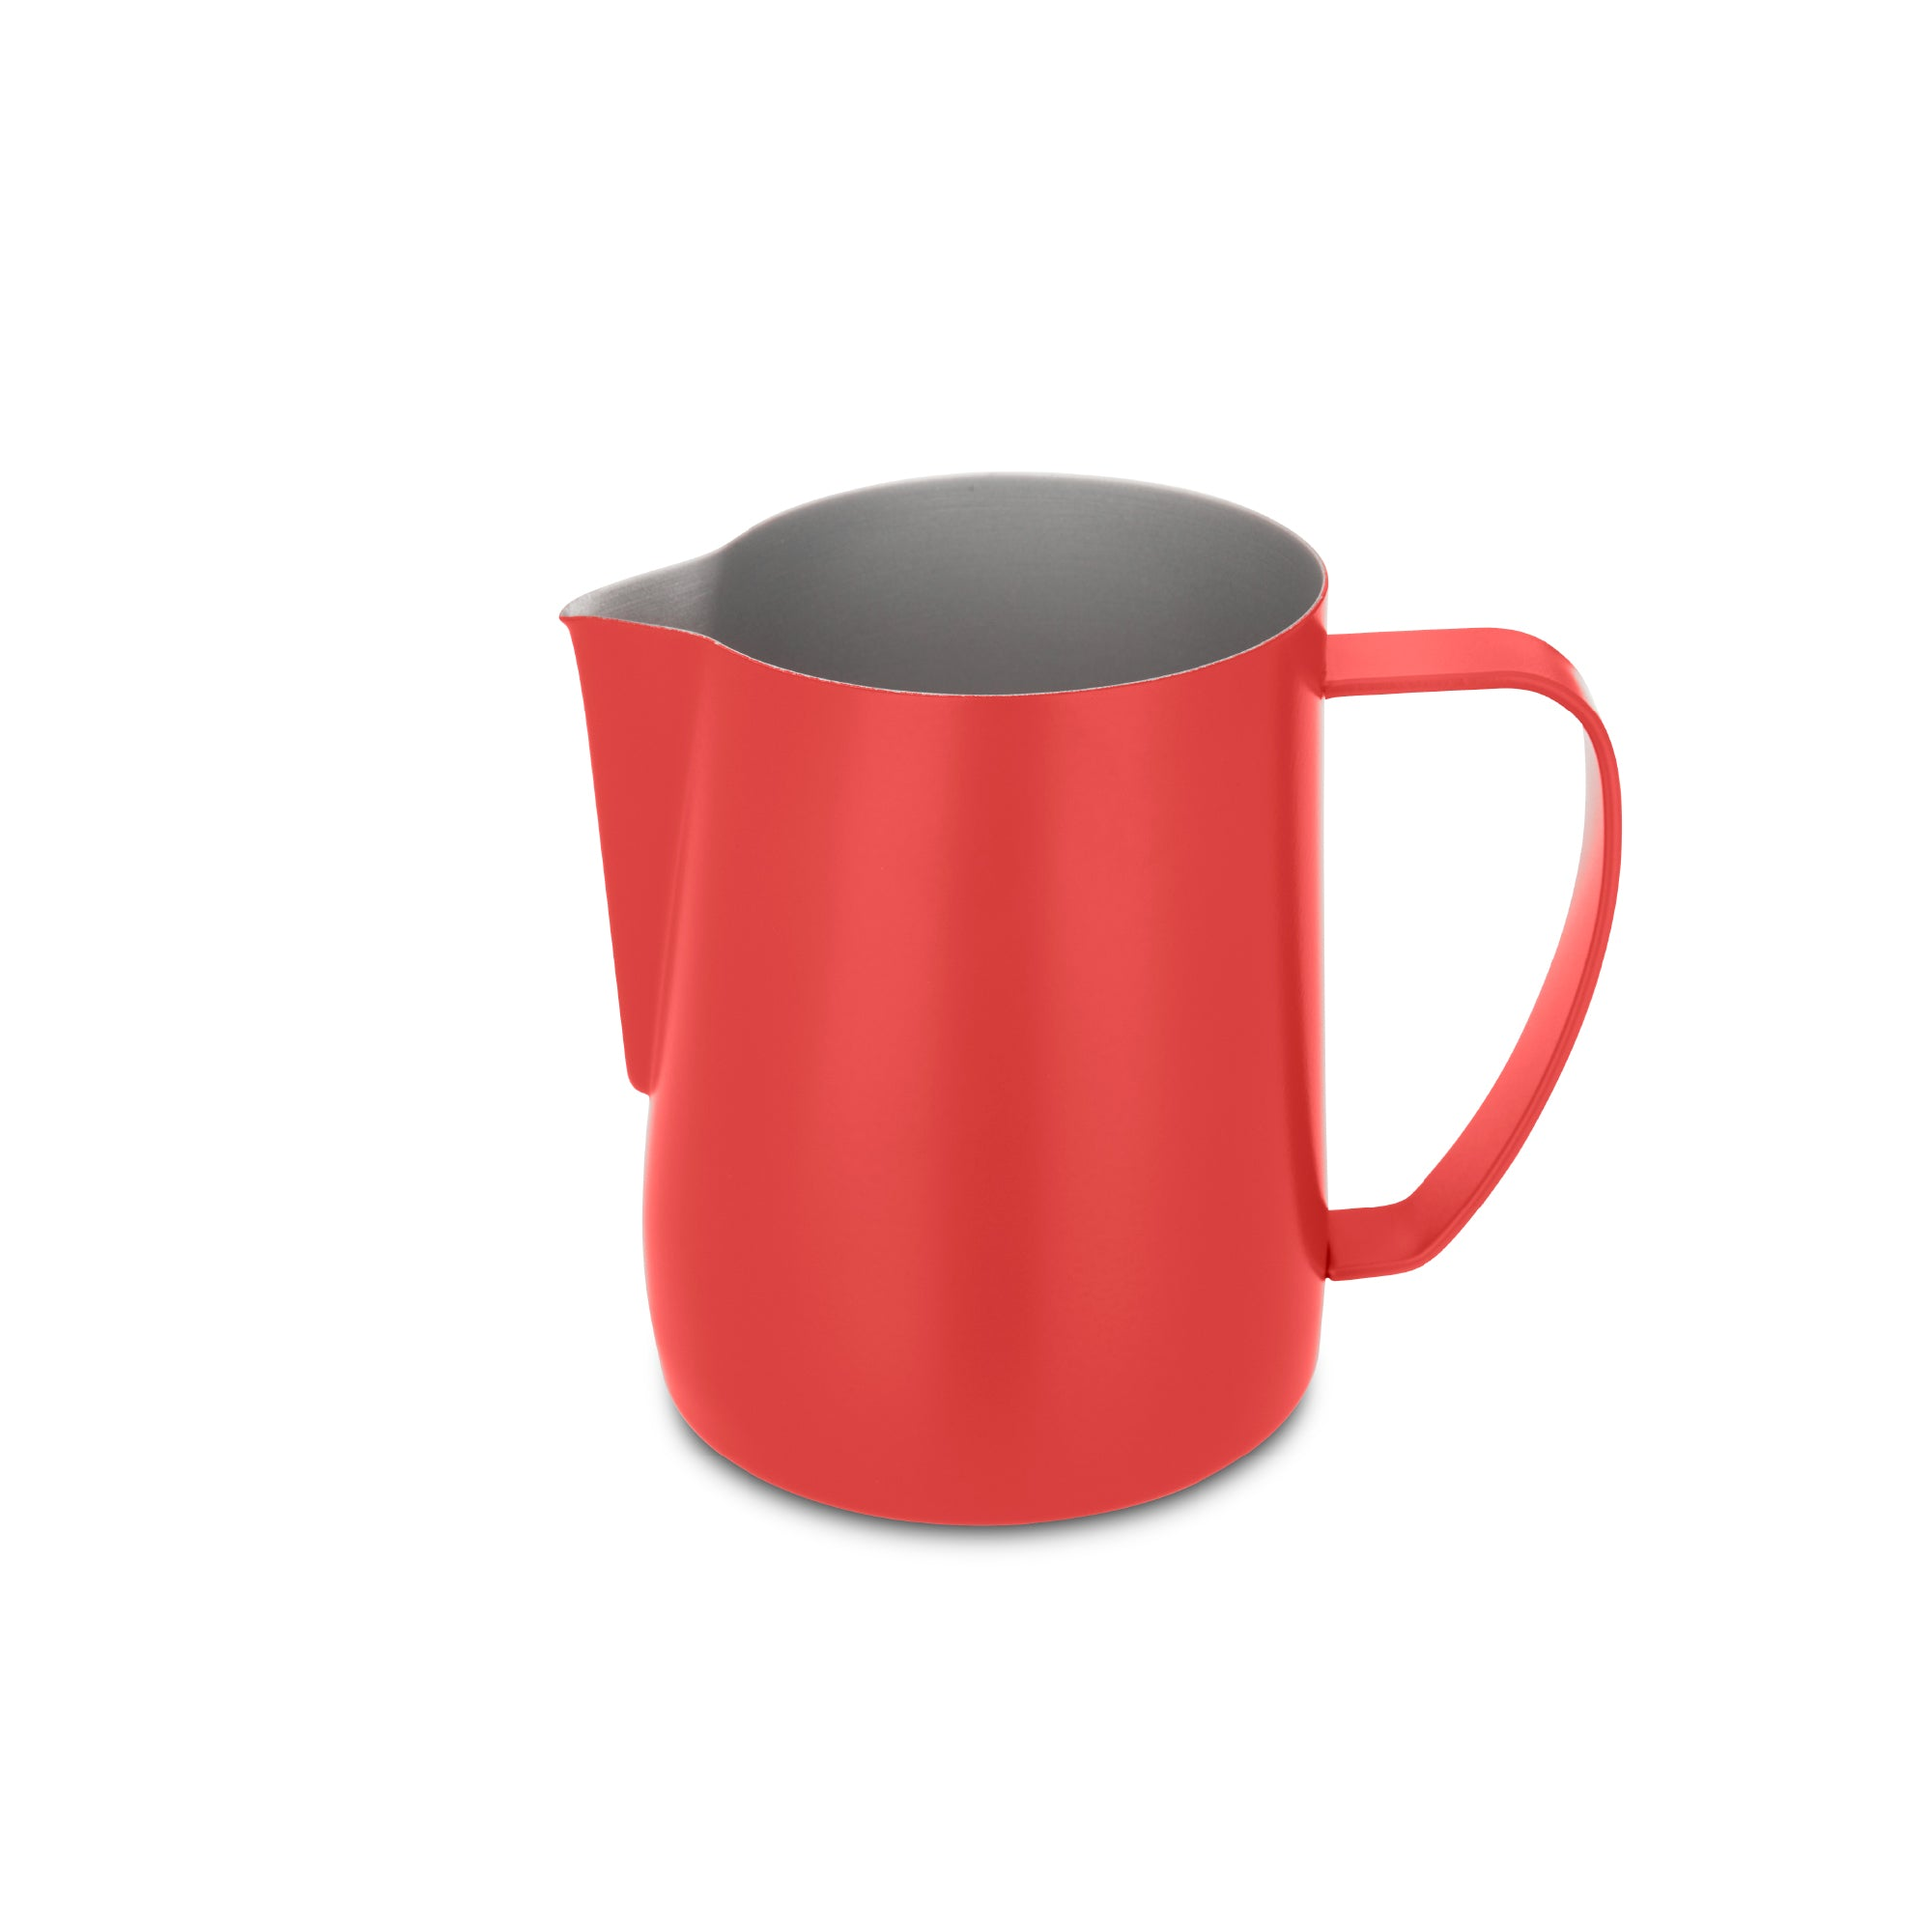 EspressoWorks Stainless Steel Milk Frothing Jug - Matte Red (600ml)